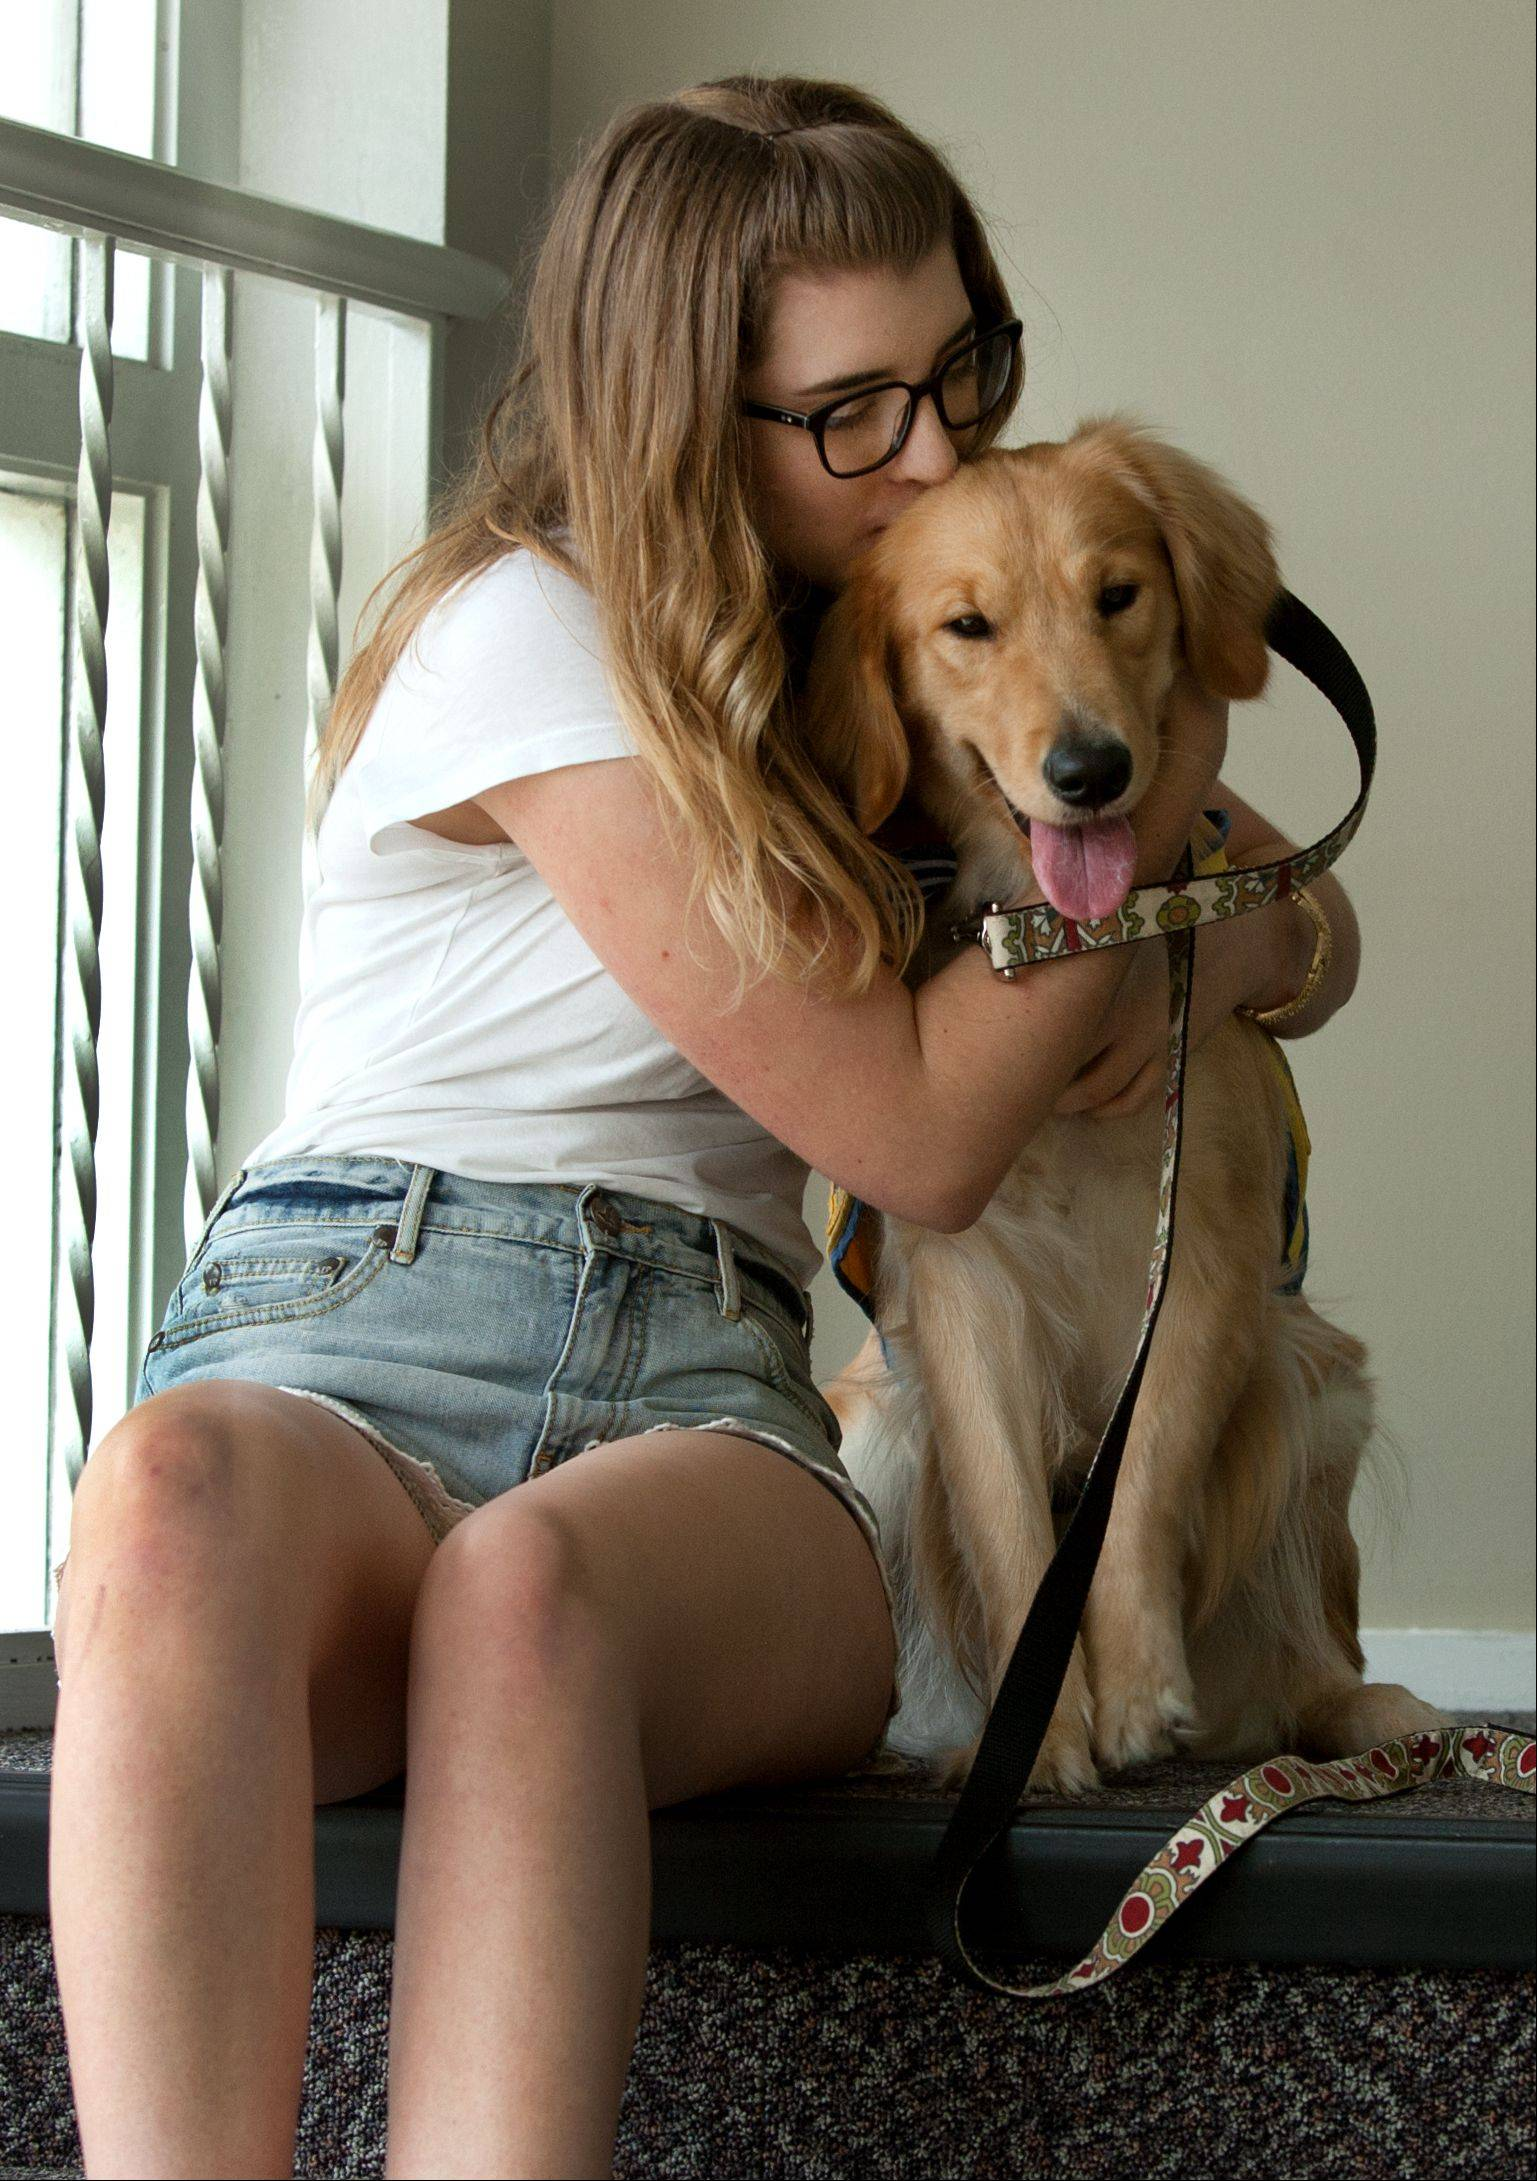 Morgan Riley cuddles with Friday, a 1-year-old golden retriever she is raising to be a service dog for people with disabilities. Service dogs must be hardworking, docile and lovable, she says.